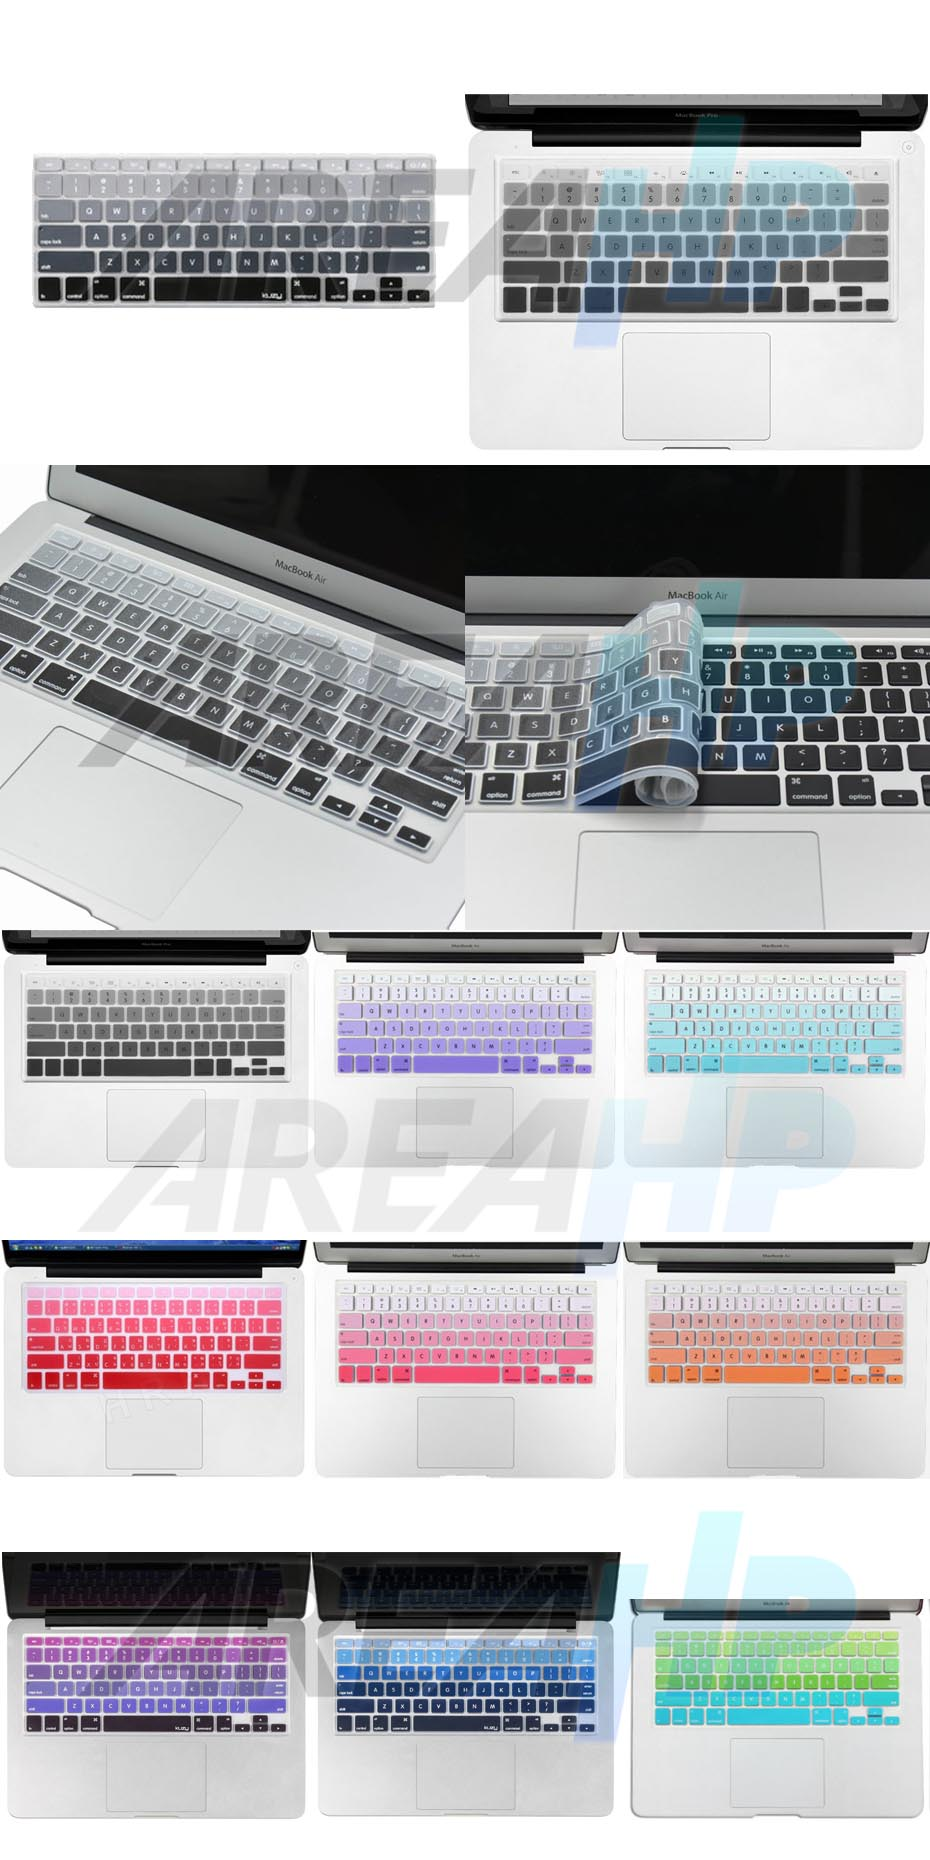 Keyboard Protector Gradient Macbook Overview